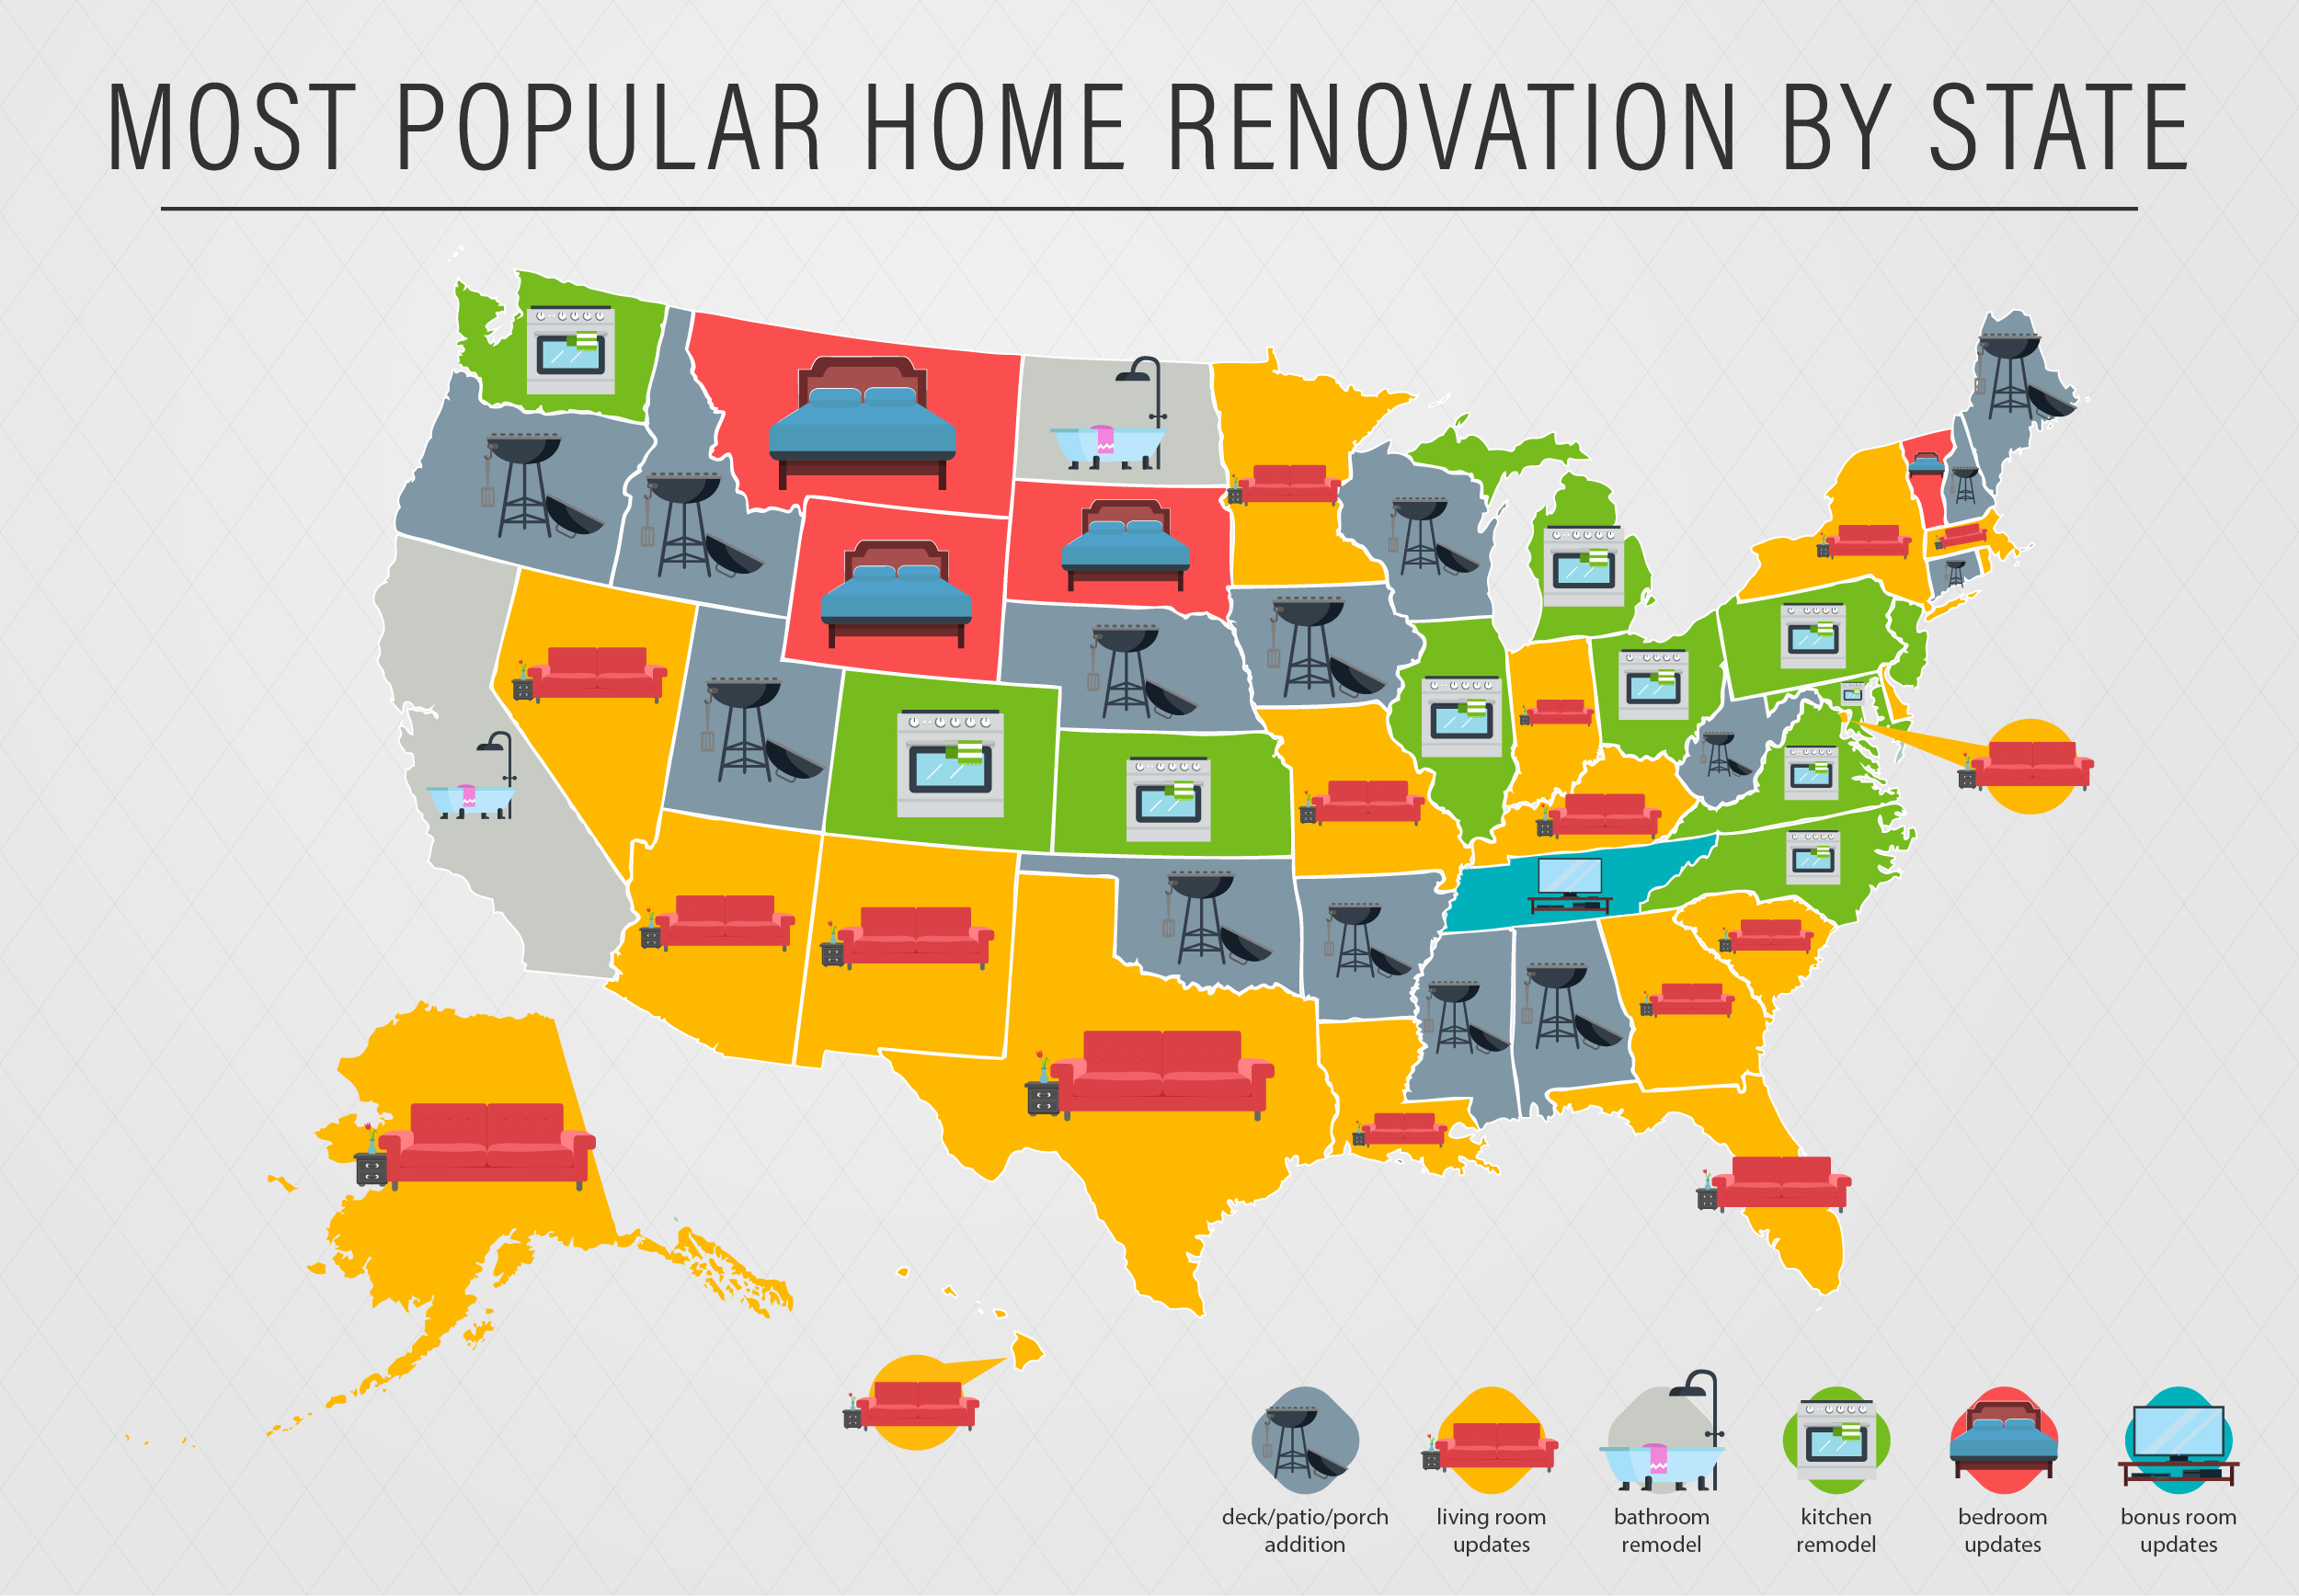 Most Popular Home Renovation Projects by State Map